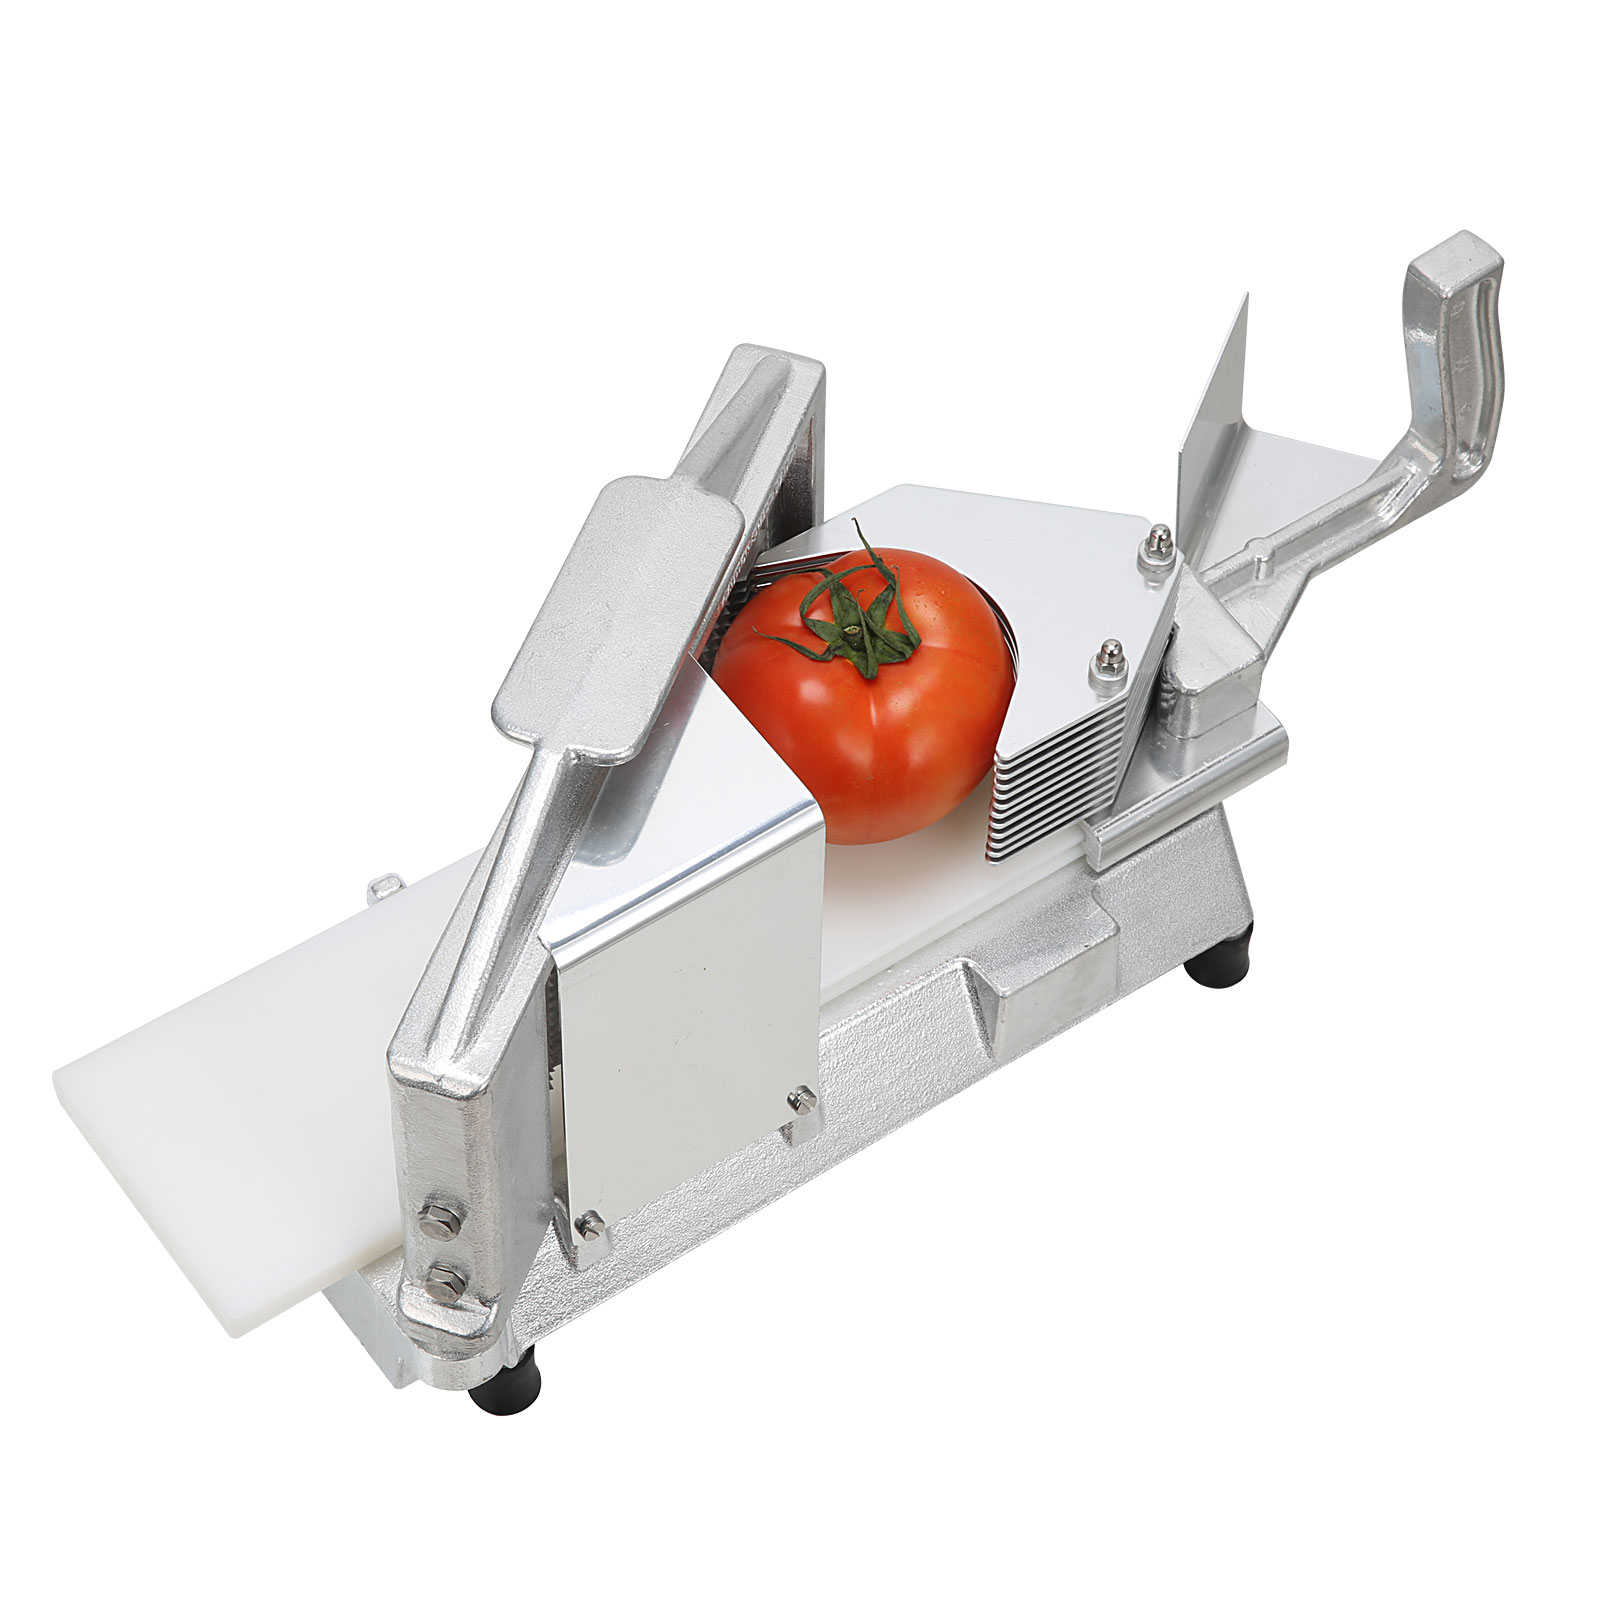 tomato slicer machine